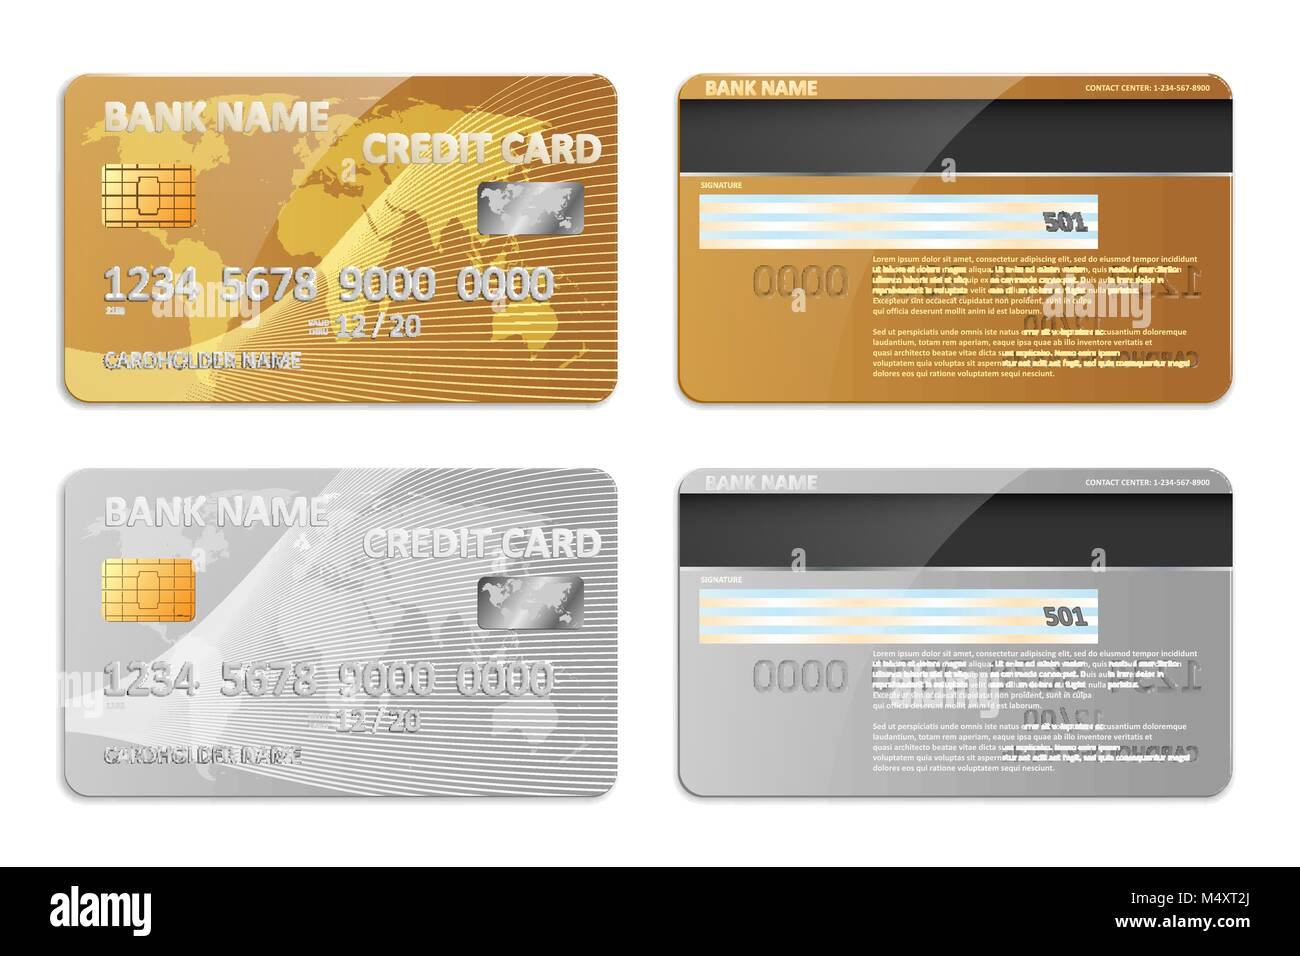 realistic gold and silver bank credit card template isolated bank